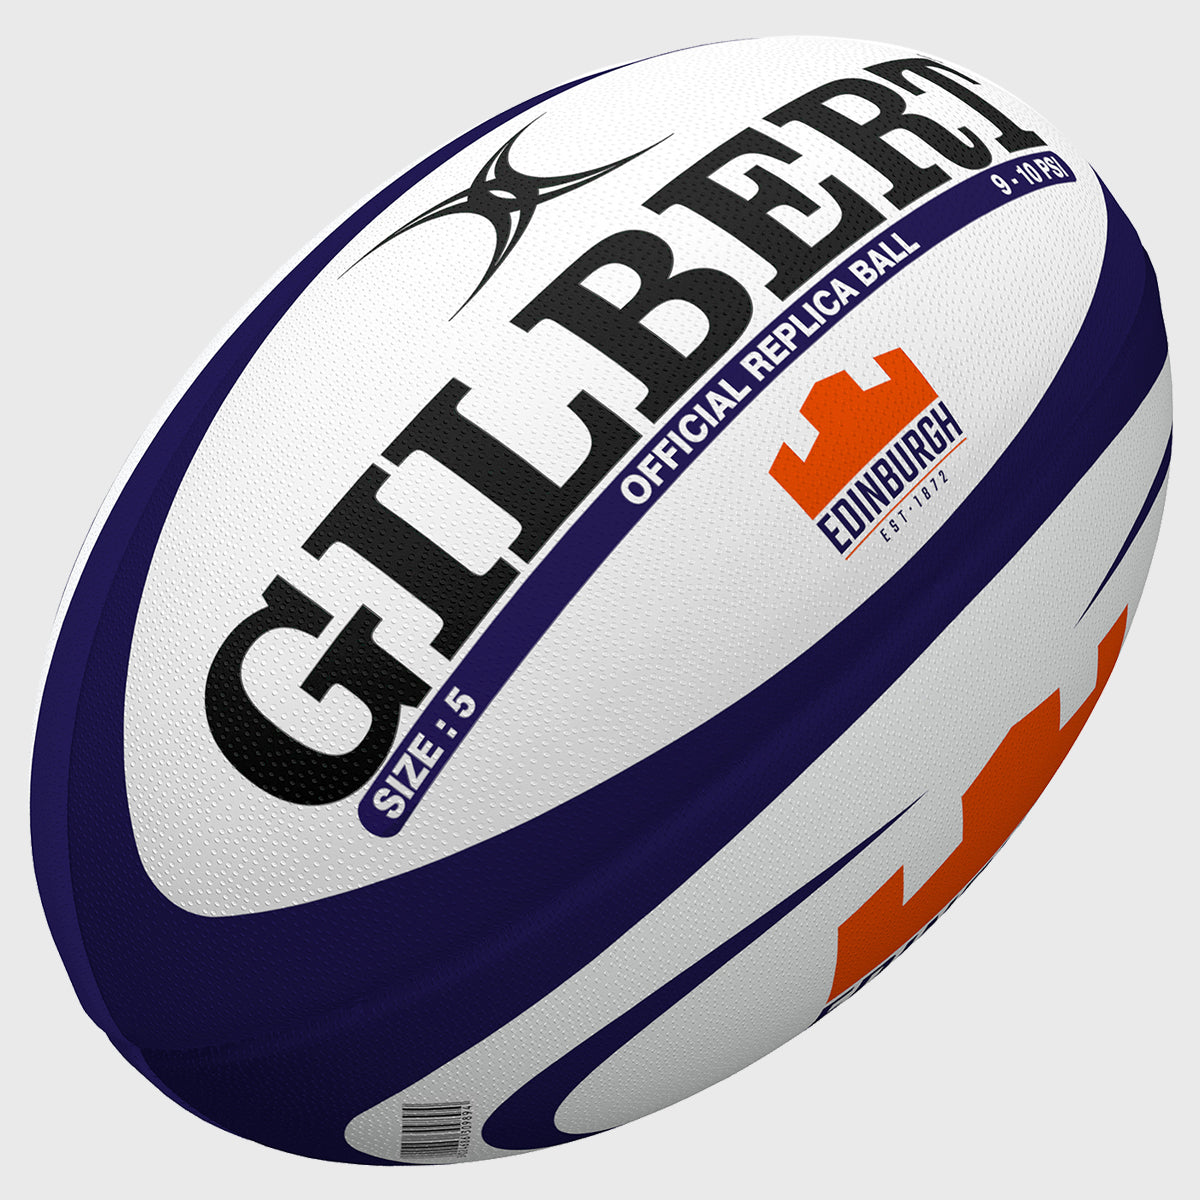 Edinburgh Replica Rugby Ball White/Navy/Orange - First XV rugbystuff.com